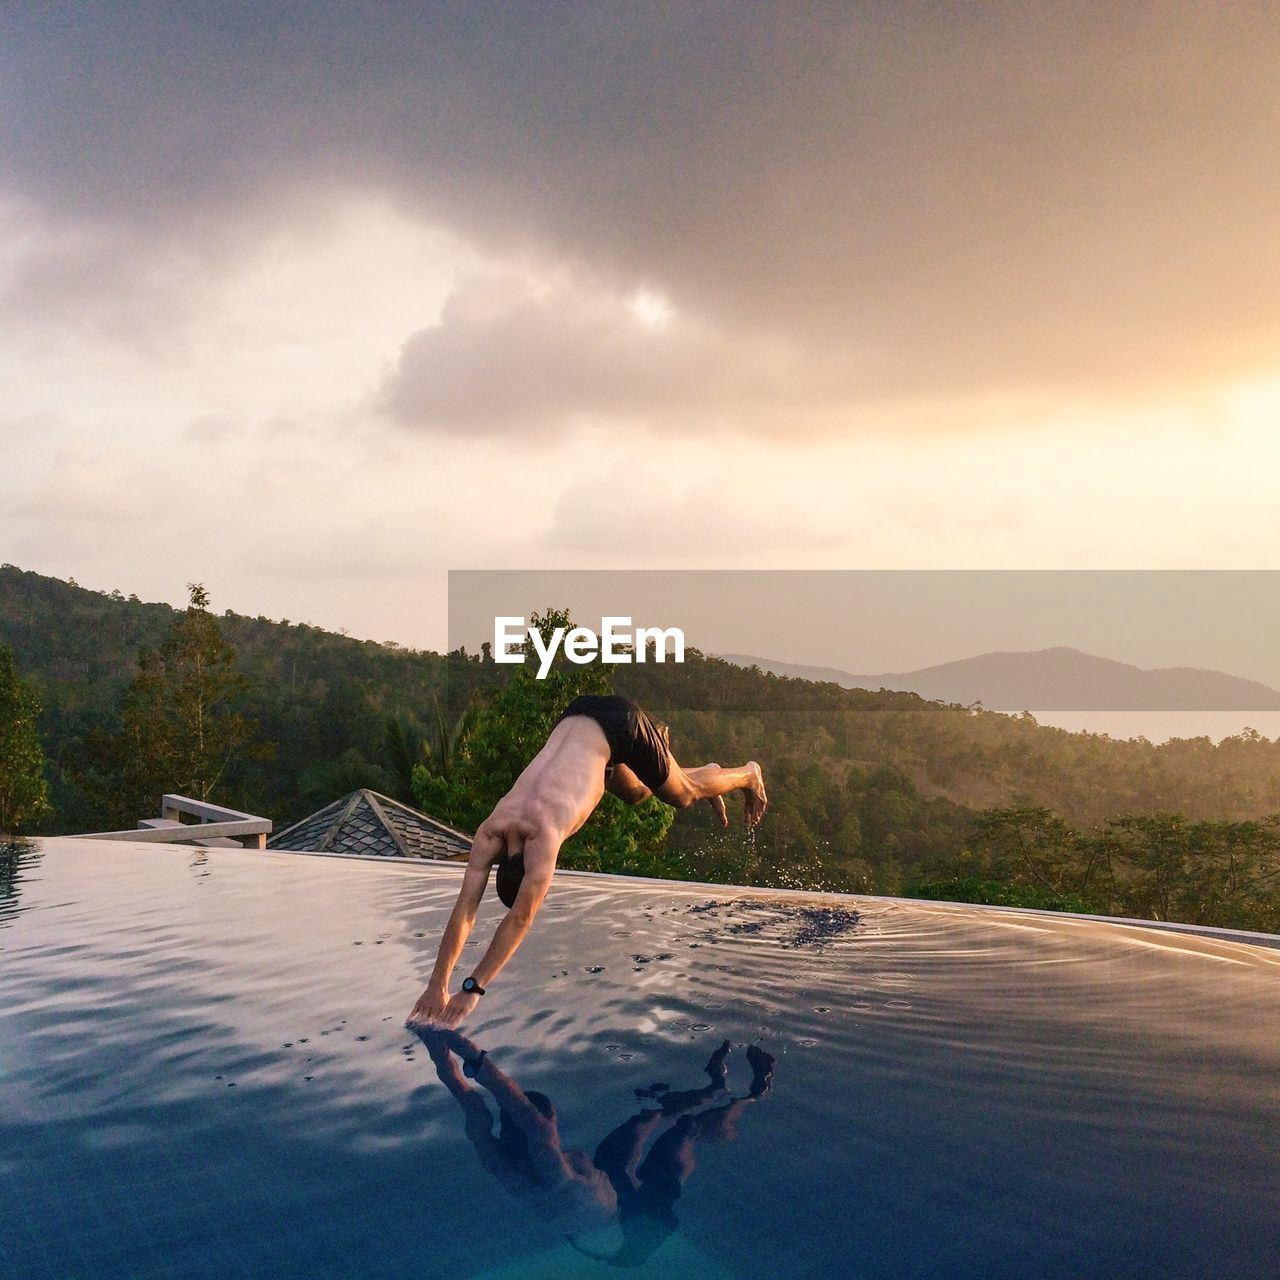 Shirtless man diving into swimming pool against sky during sunset